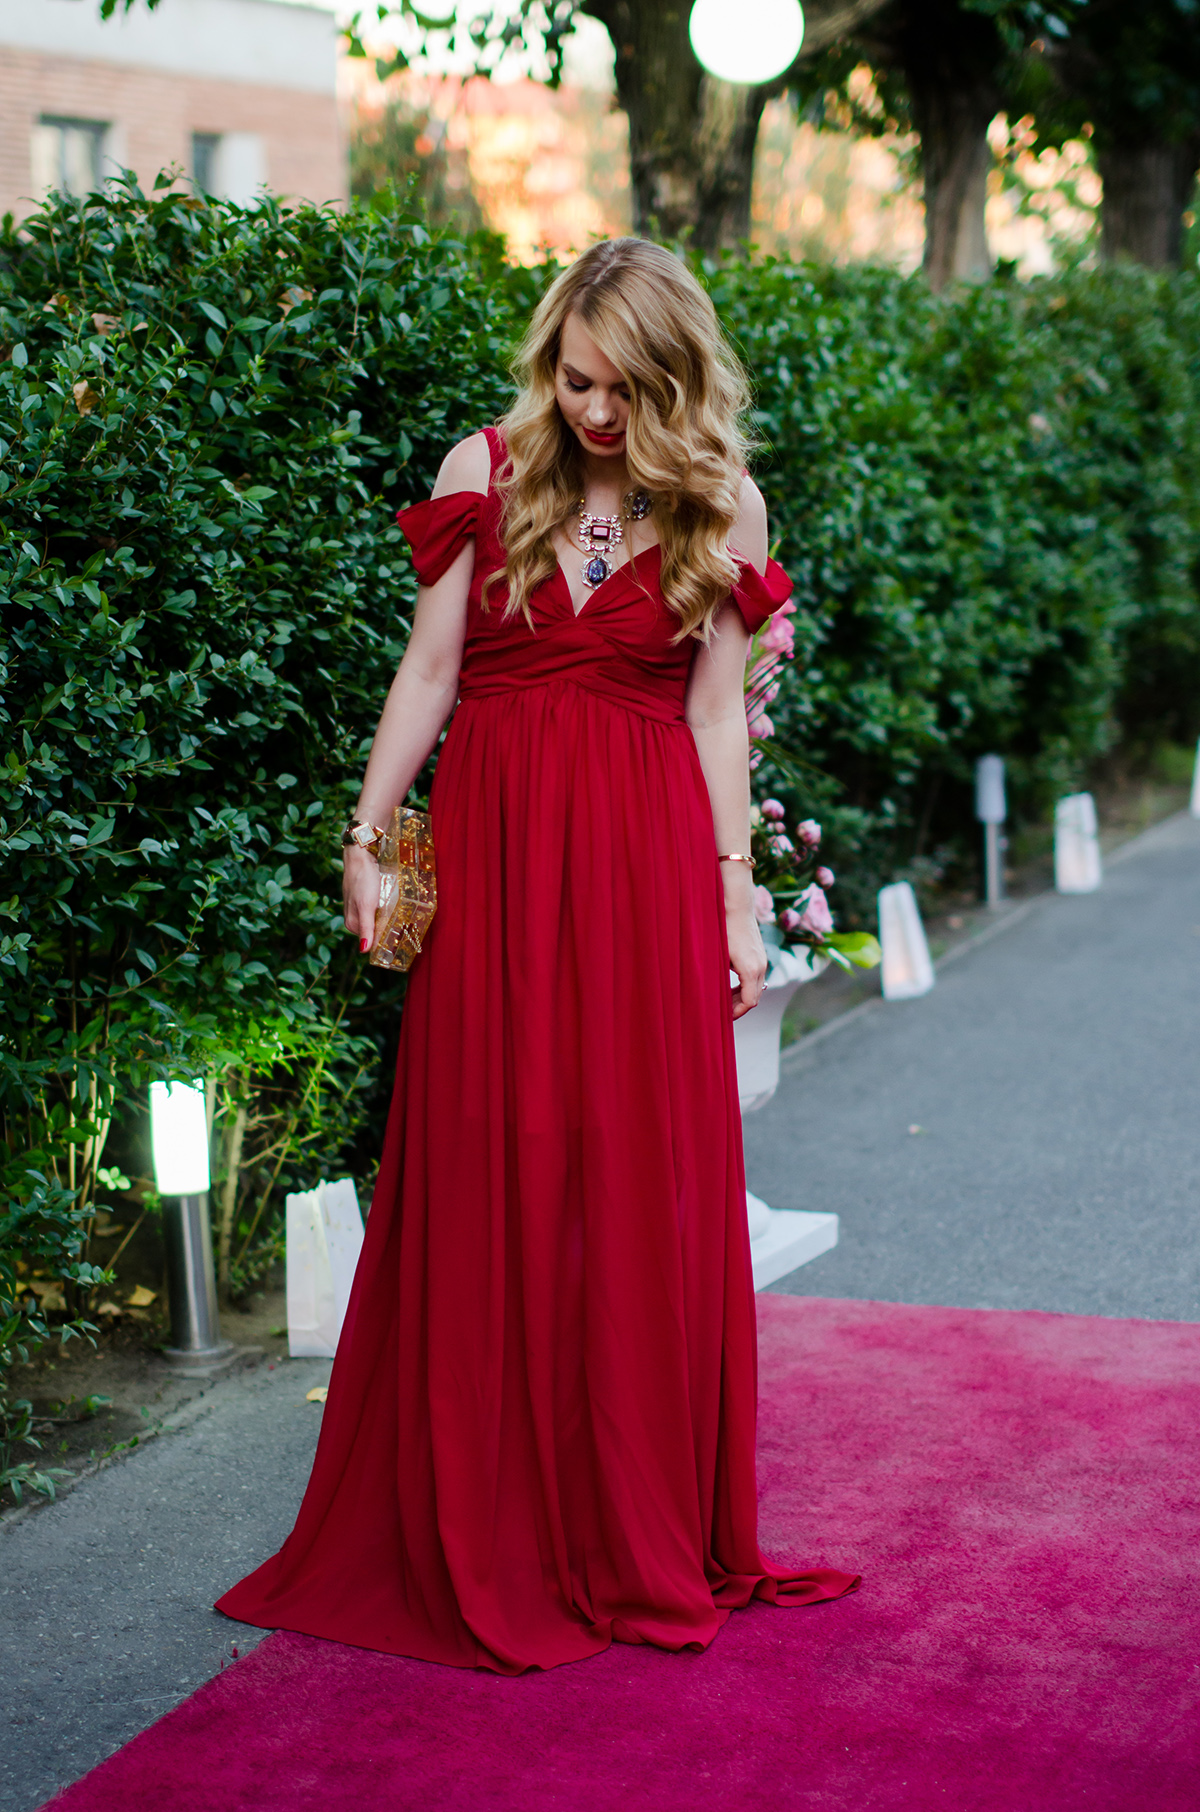 Wedding Outfit The Red Maxi Dress Pink WishPink Wish